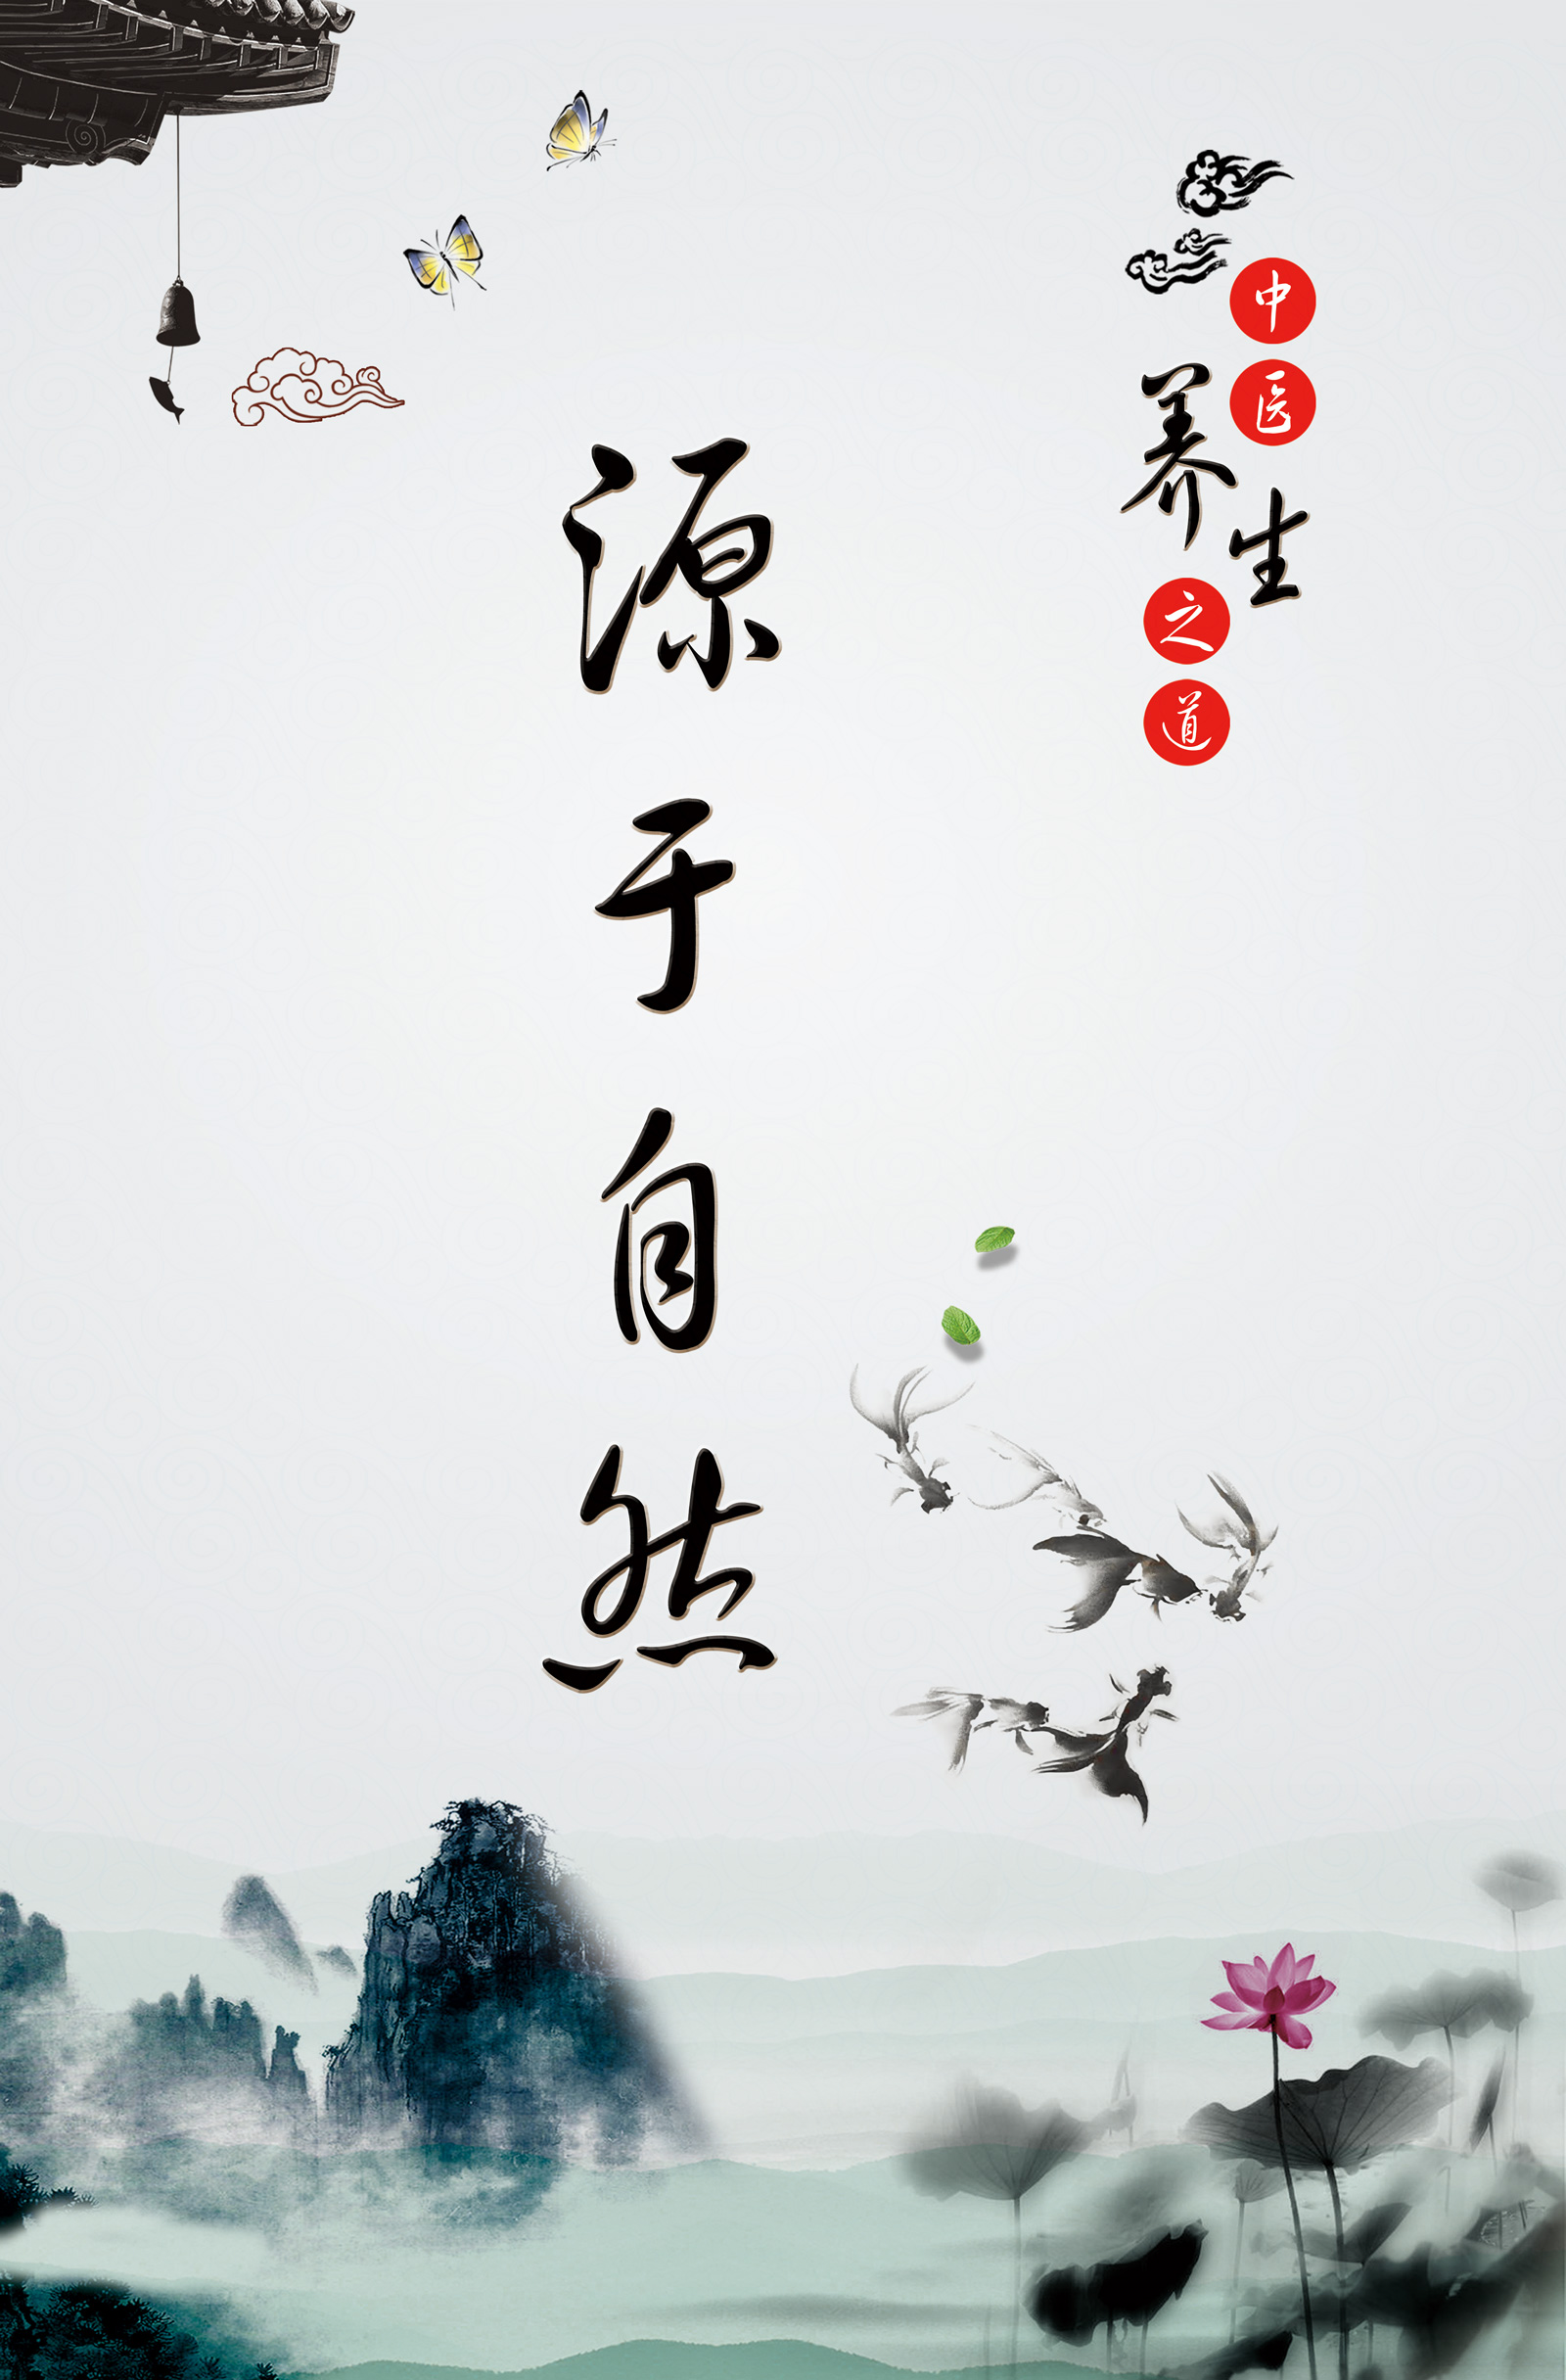 chinesefontdesign.com 2017 02 22 18 17 31 Beautiful Chinese ink and wash style of poster design   PSD File Free Download